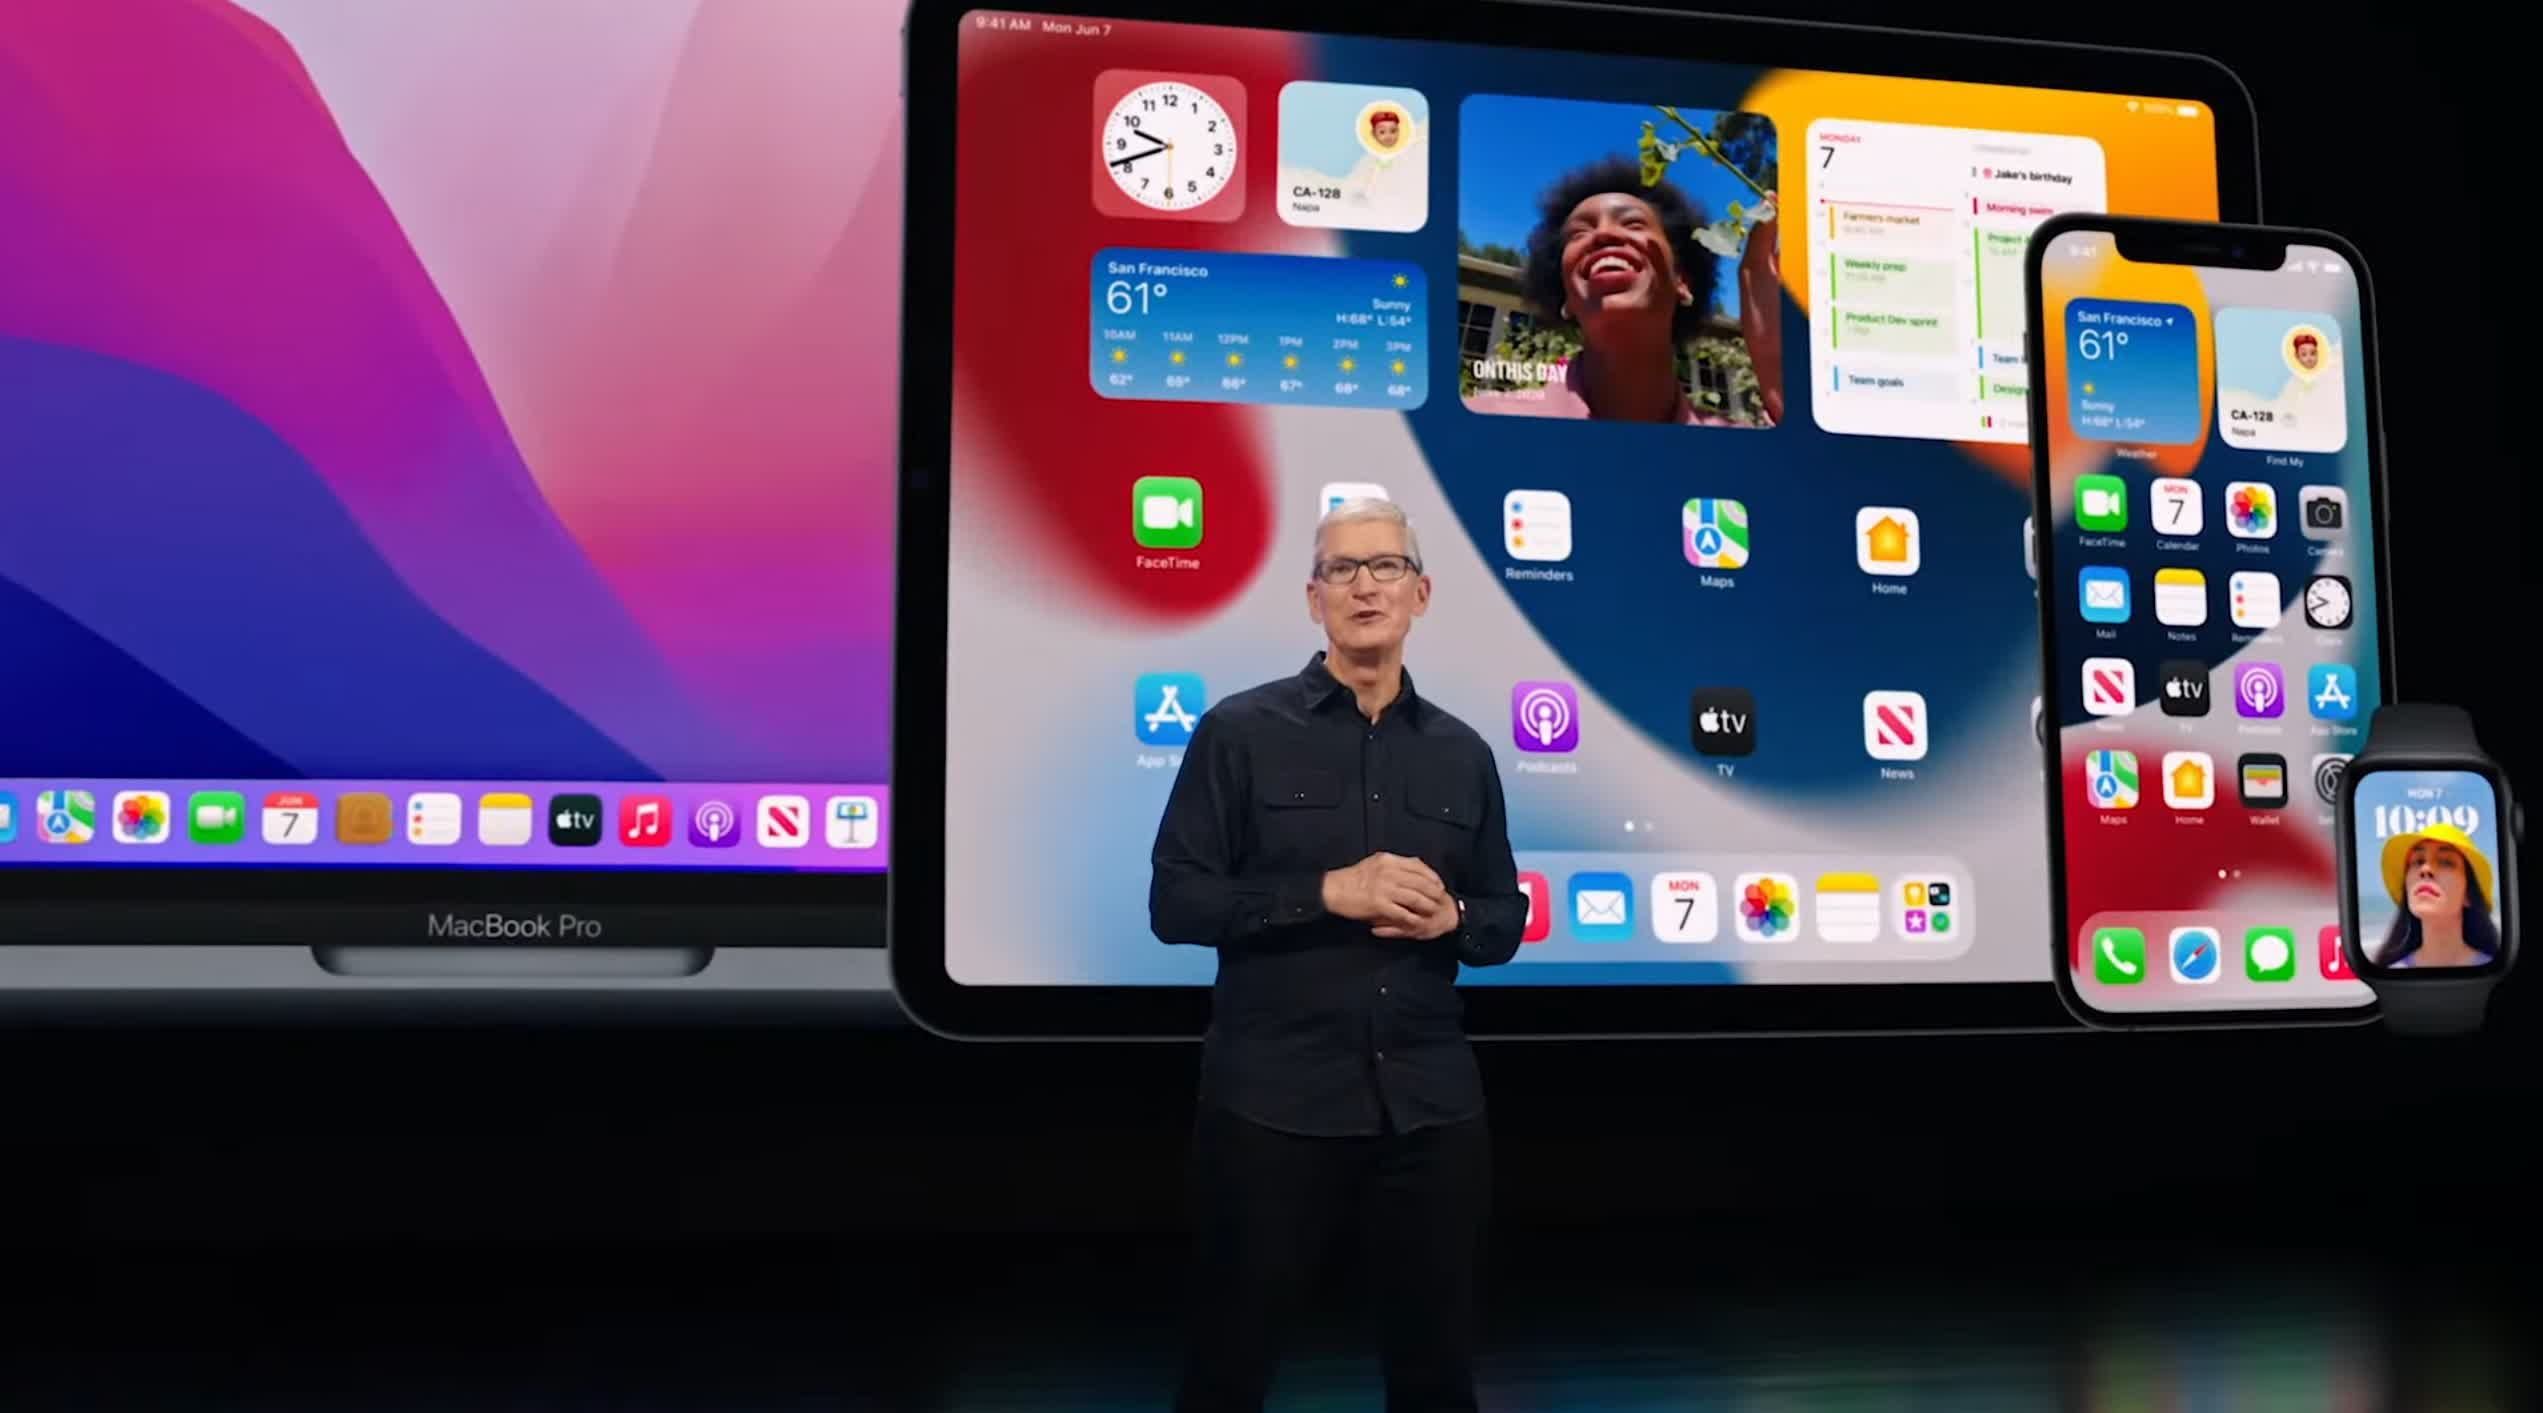 Apple reveals iOS 15, iPadOS 15, and macOS Monterey - here are the highlights